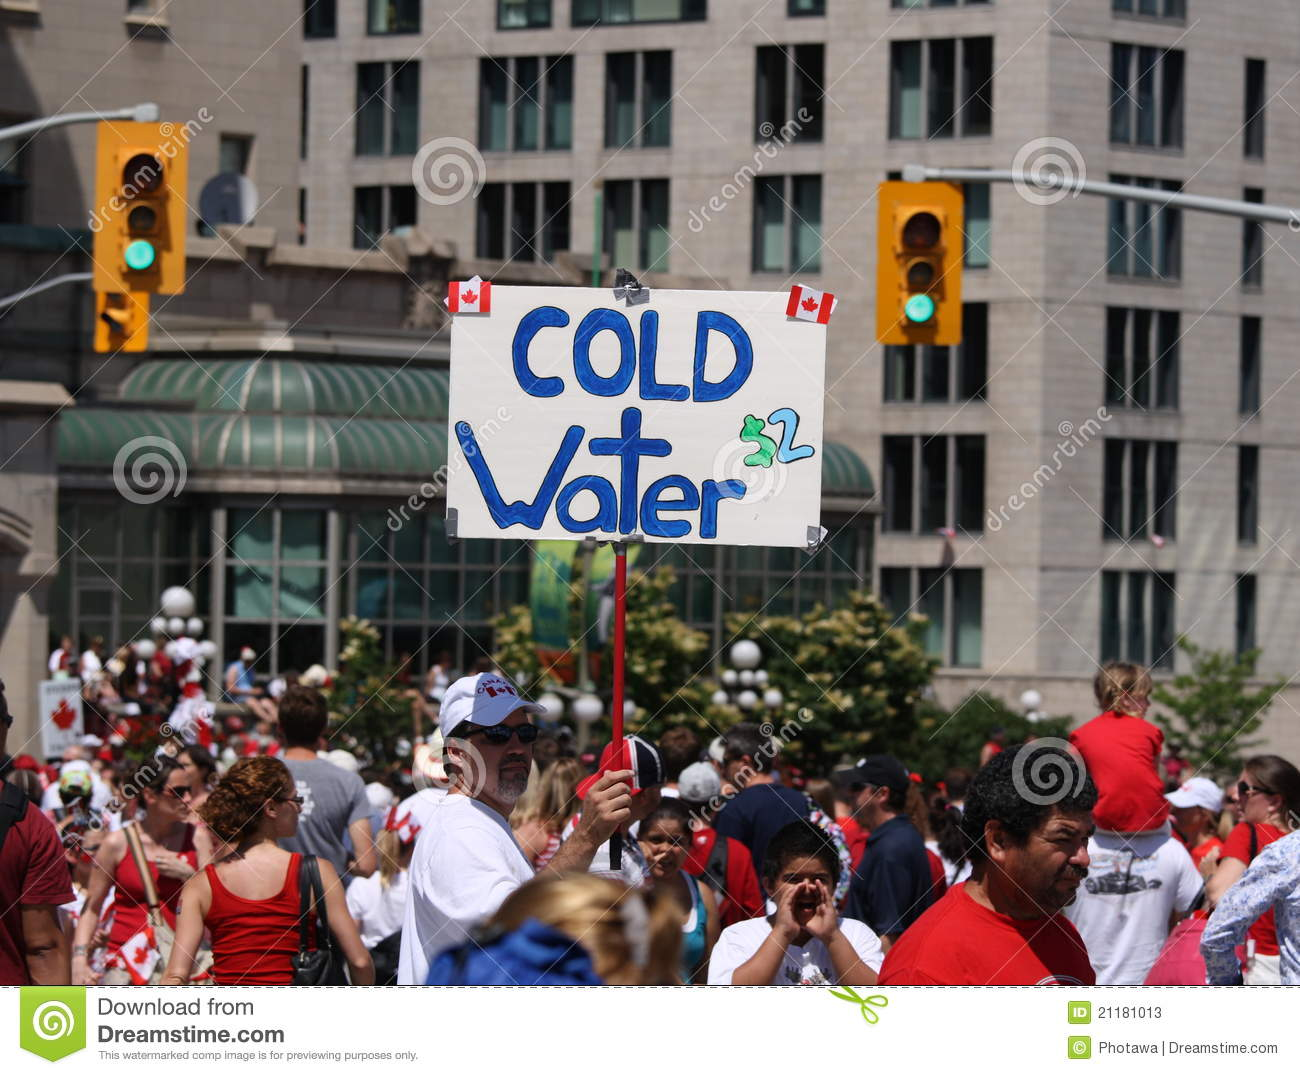 Cold Water on Canada Day